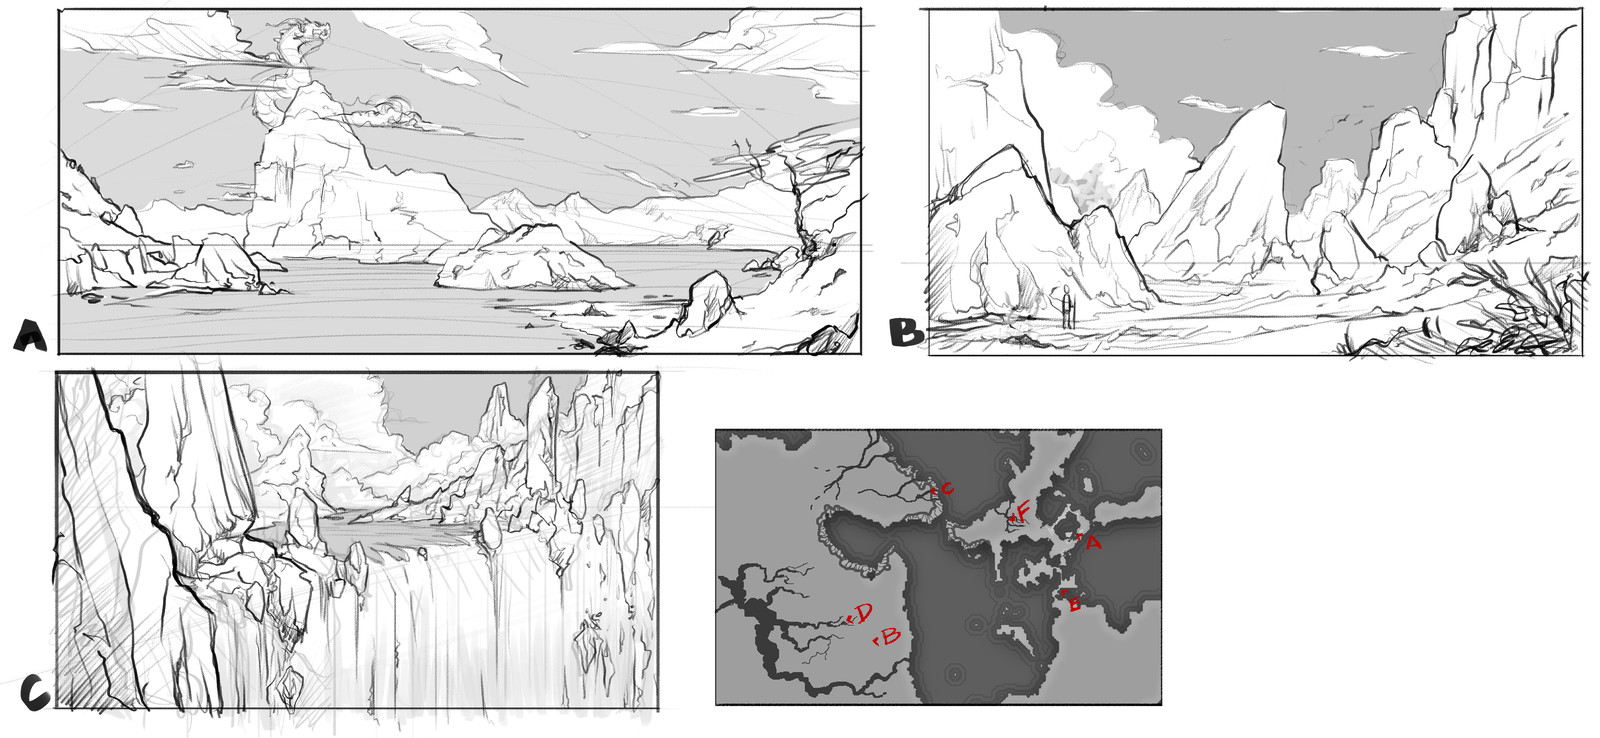 Environment concept art sketches